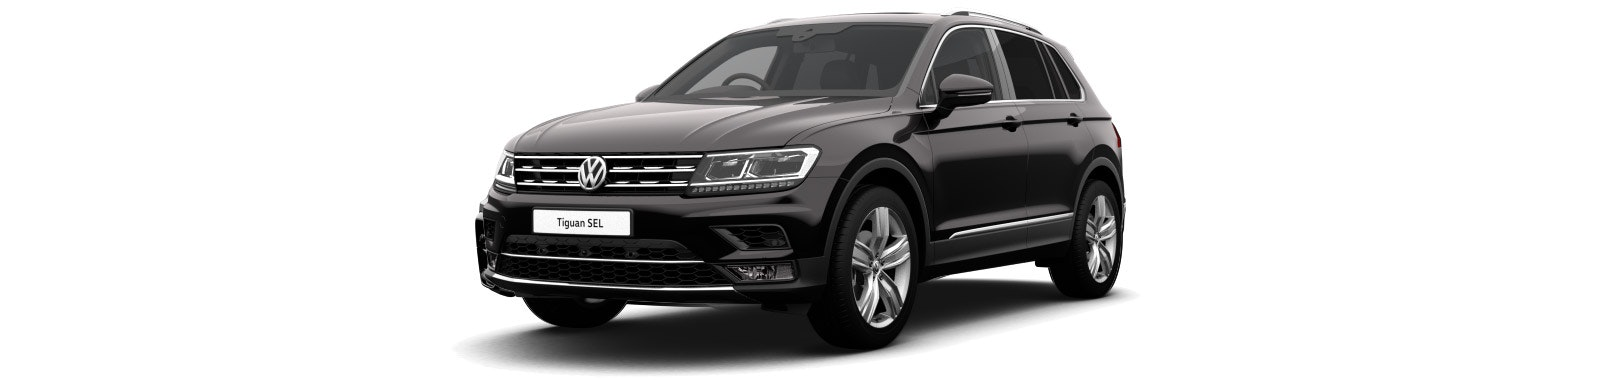 Deep Black VW Tiguan